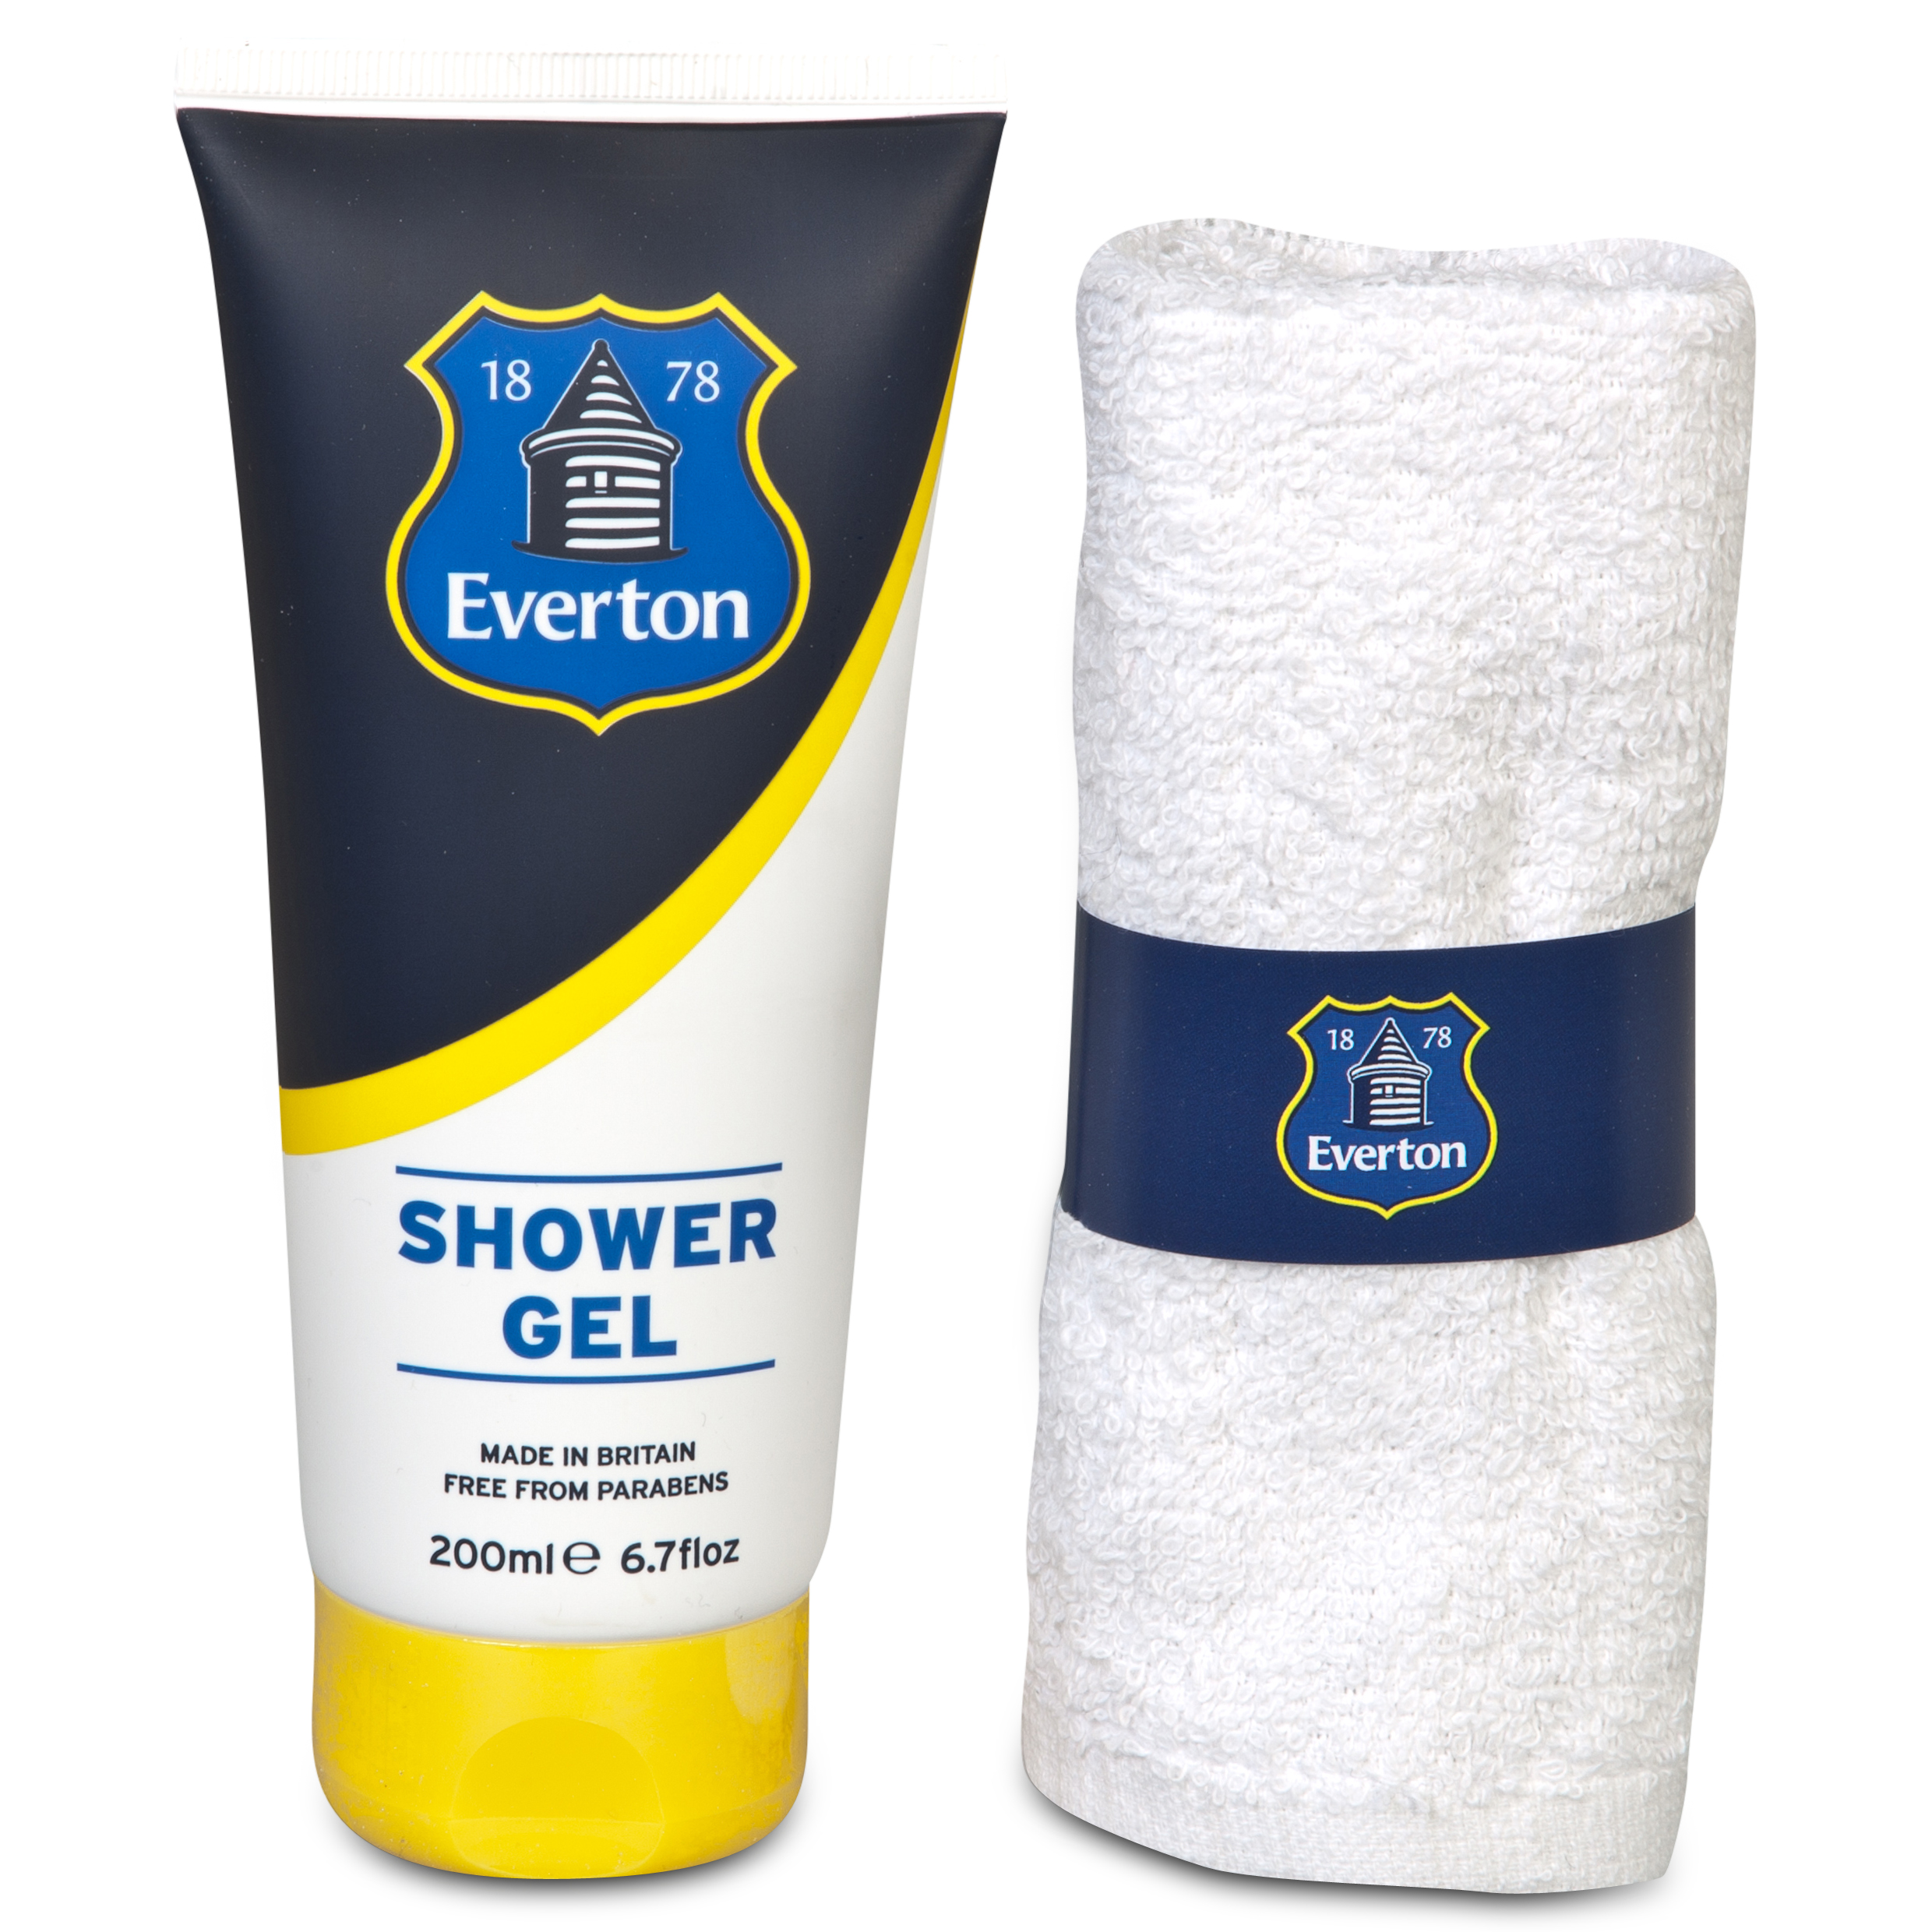 Everton Shower Gel & Face Cloth Gift Set